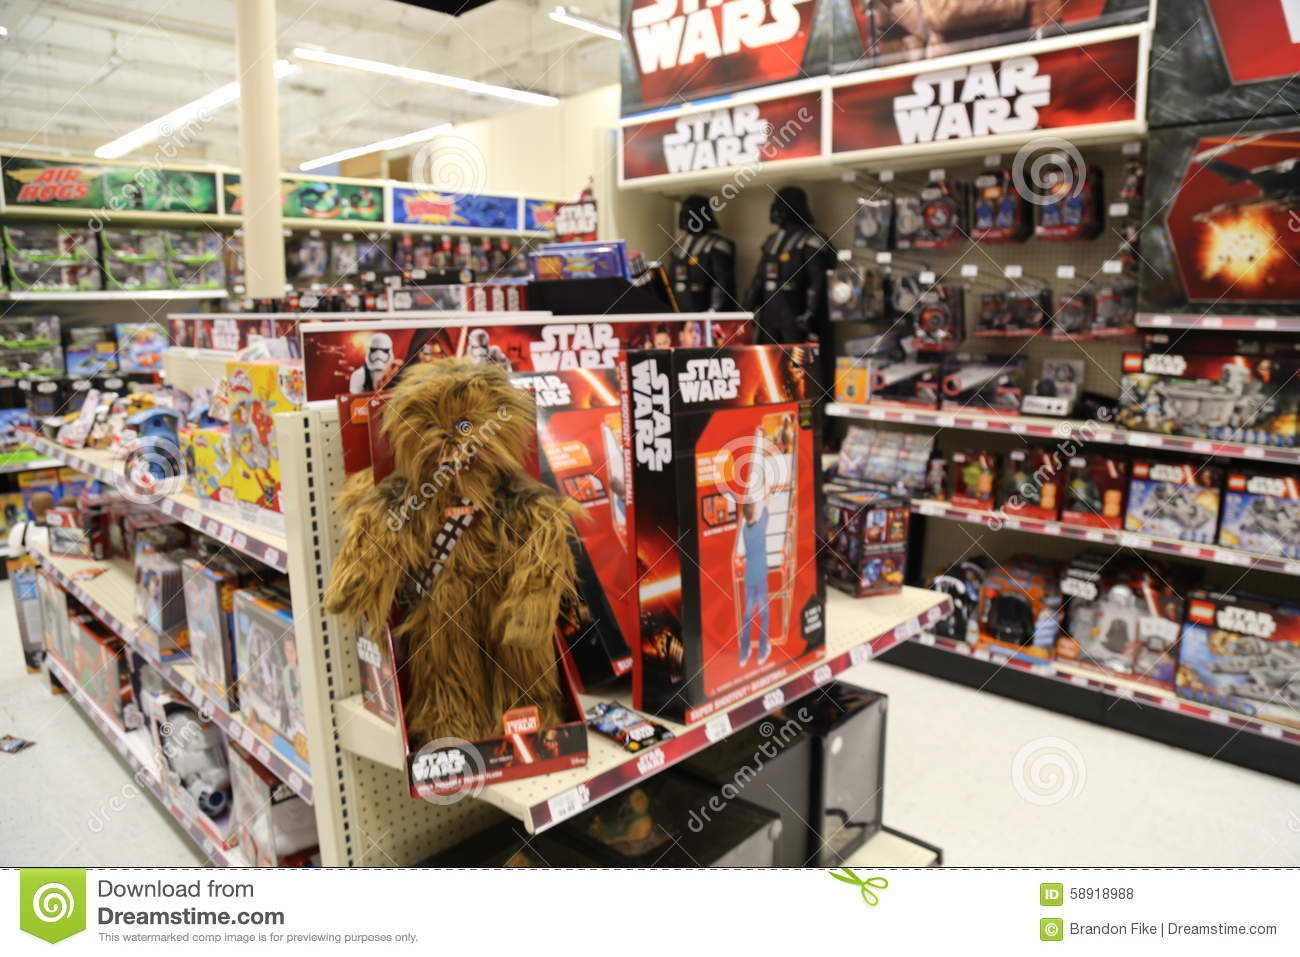 an analysis of good and evil in star wars a film by george lucas Last week george lucas completed his $406 billion sale of lucasfilm to the walt disney company, effectively making the star wars franchise one more gear in the disney corporate entertainment machine.